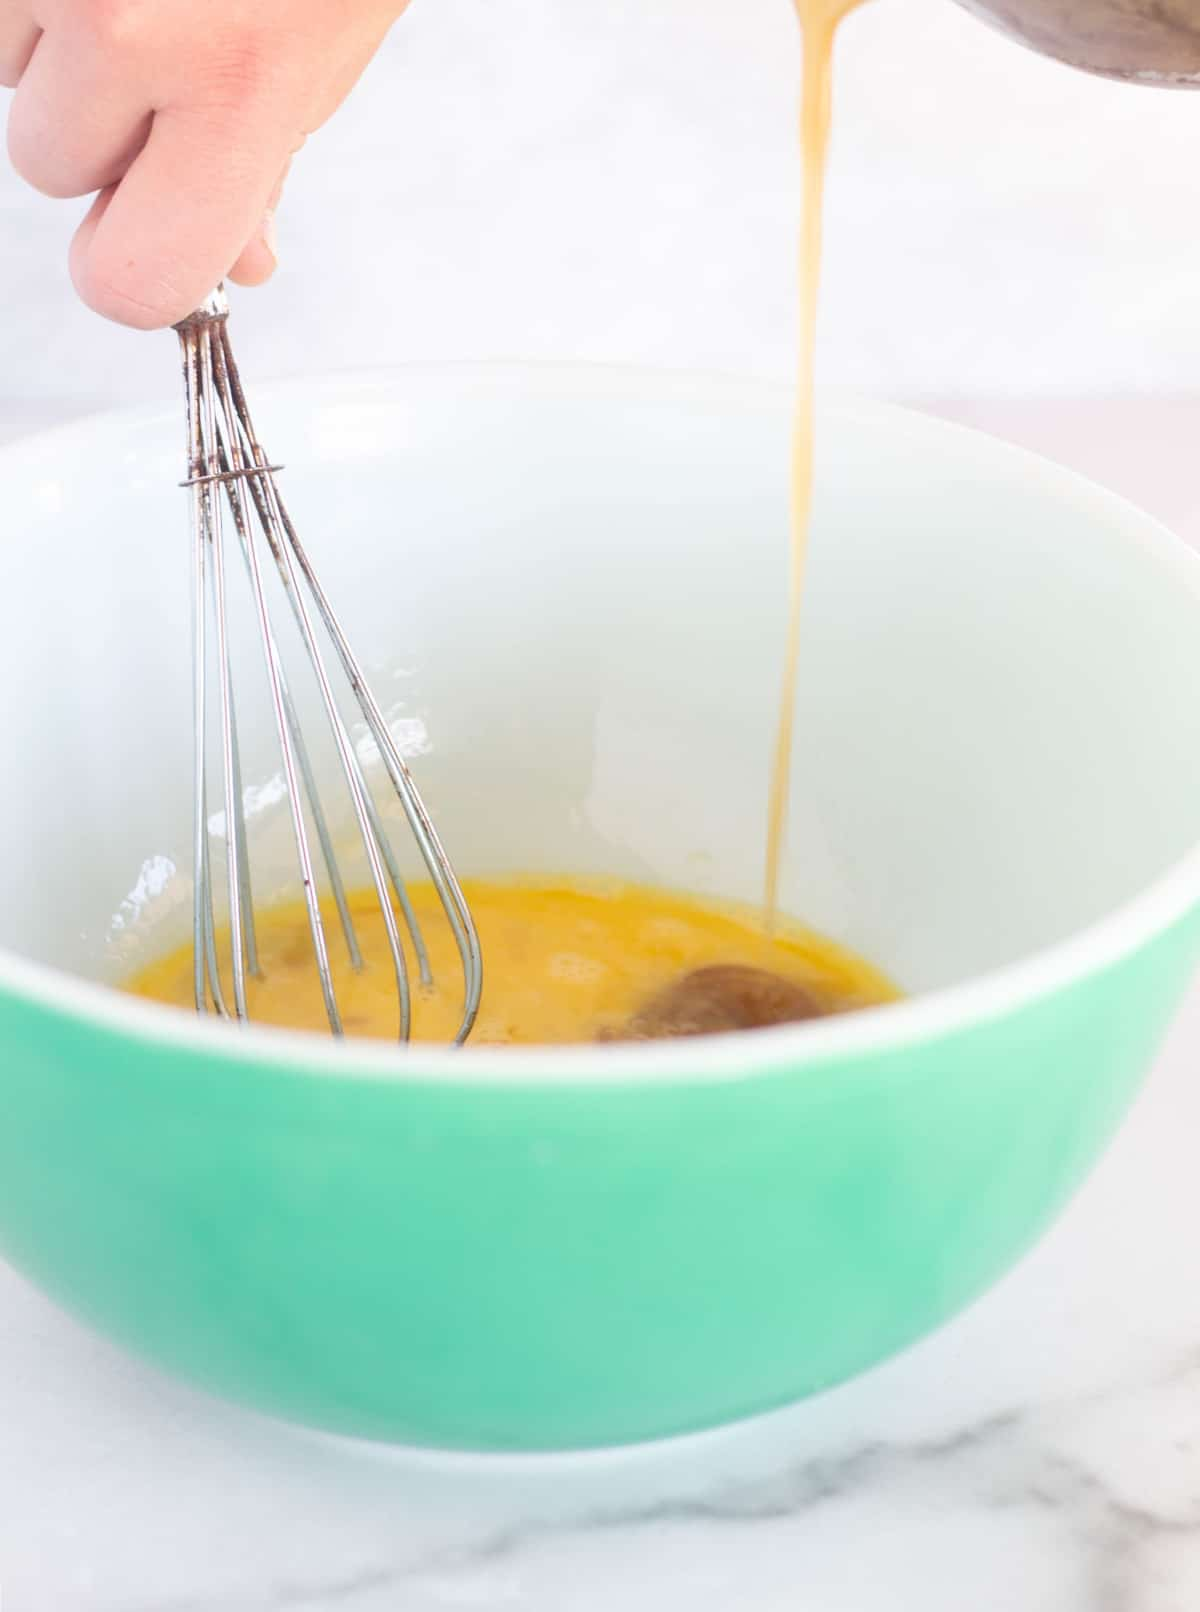 slowly whisking the filling into the eggs